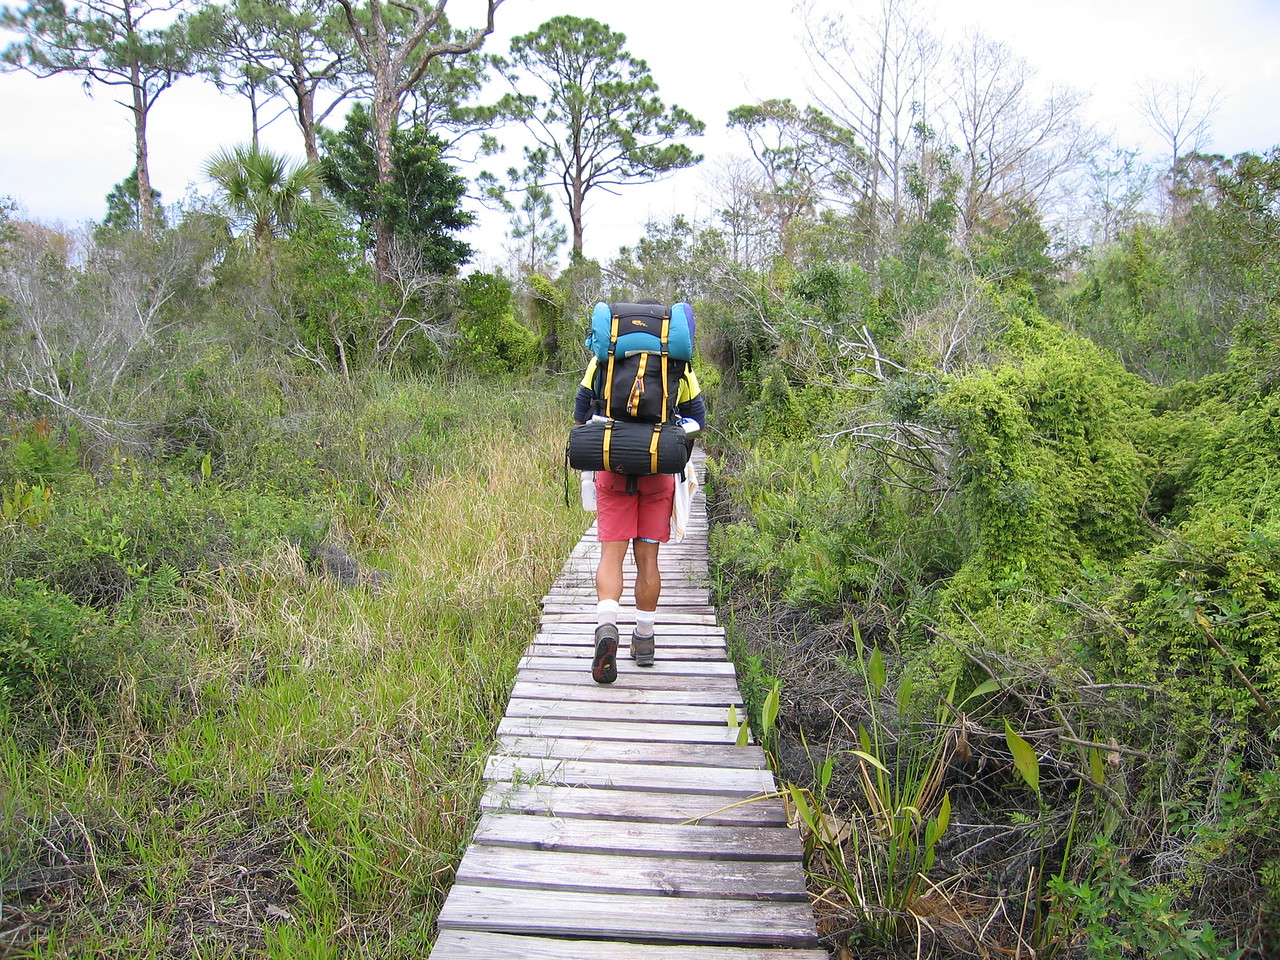 Boardwalk in JD<br /> photo credit: Raphael Clemente / Florida Trail Association